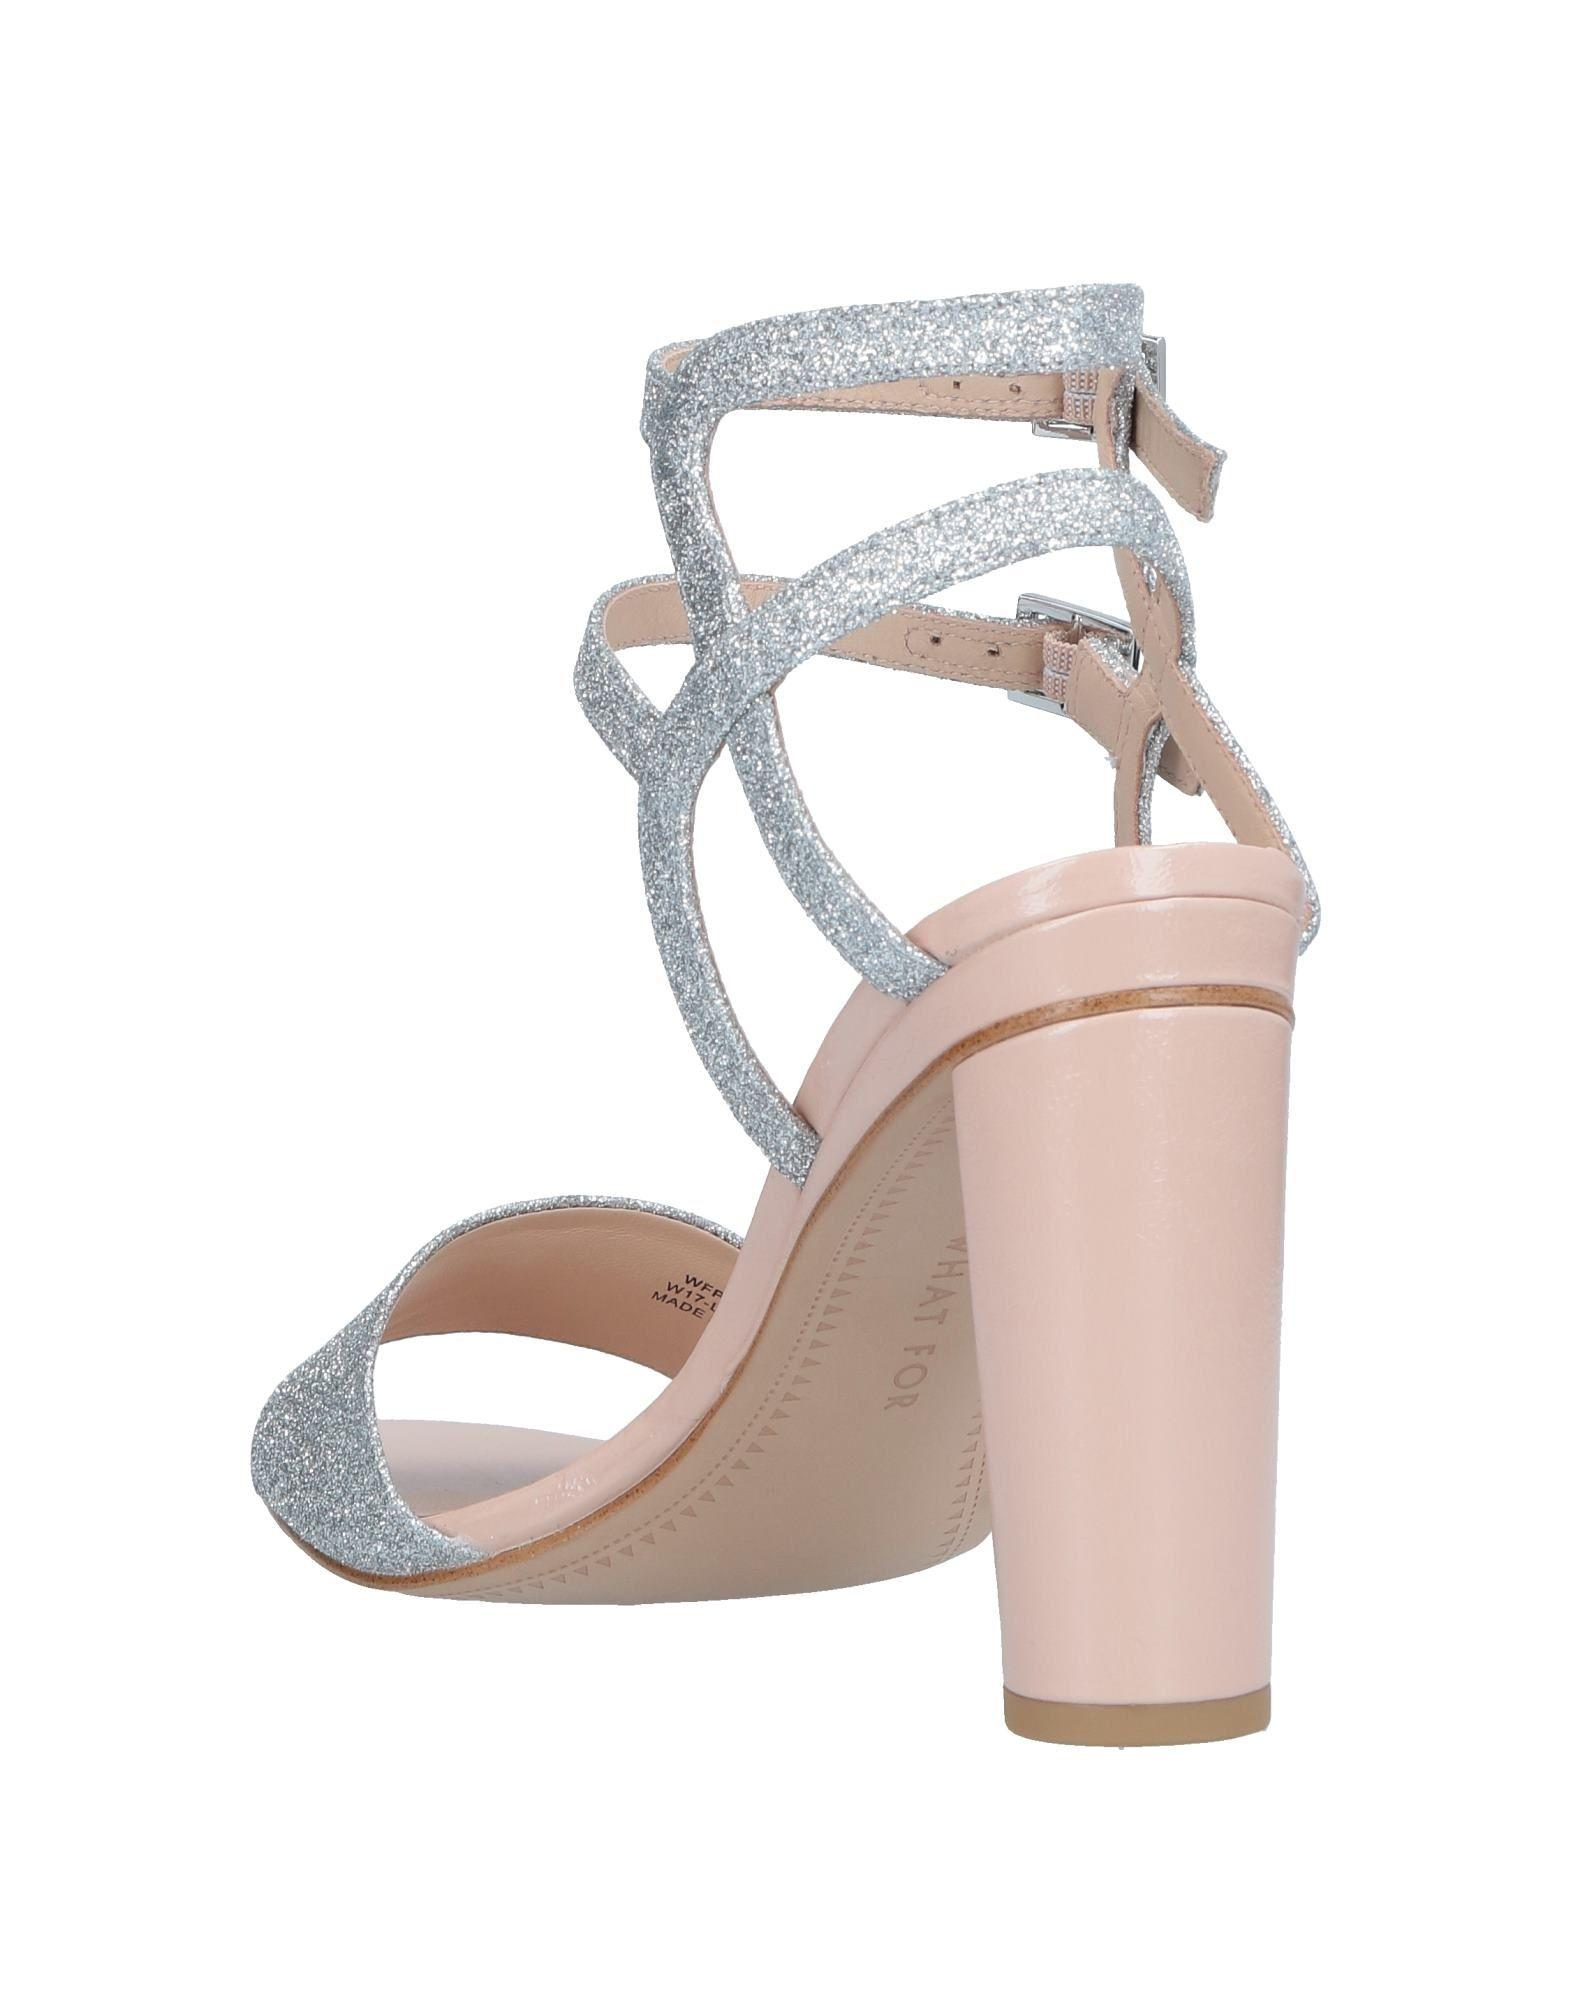 334545be40a3 Lyst - What For Sandals in Metallic